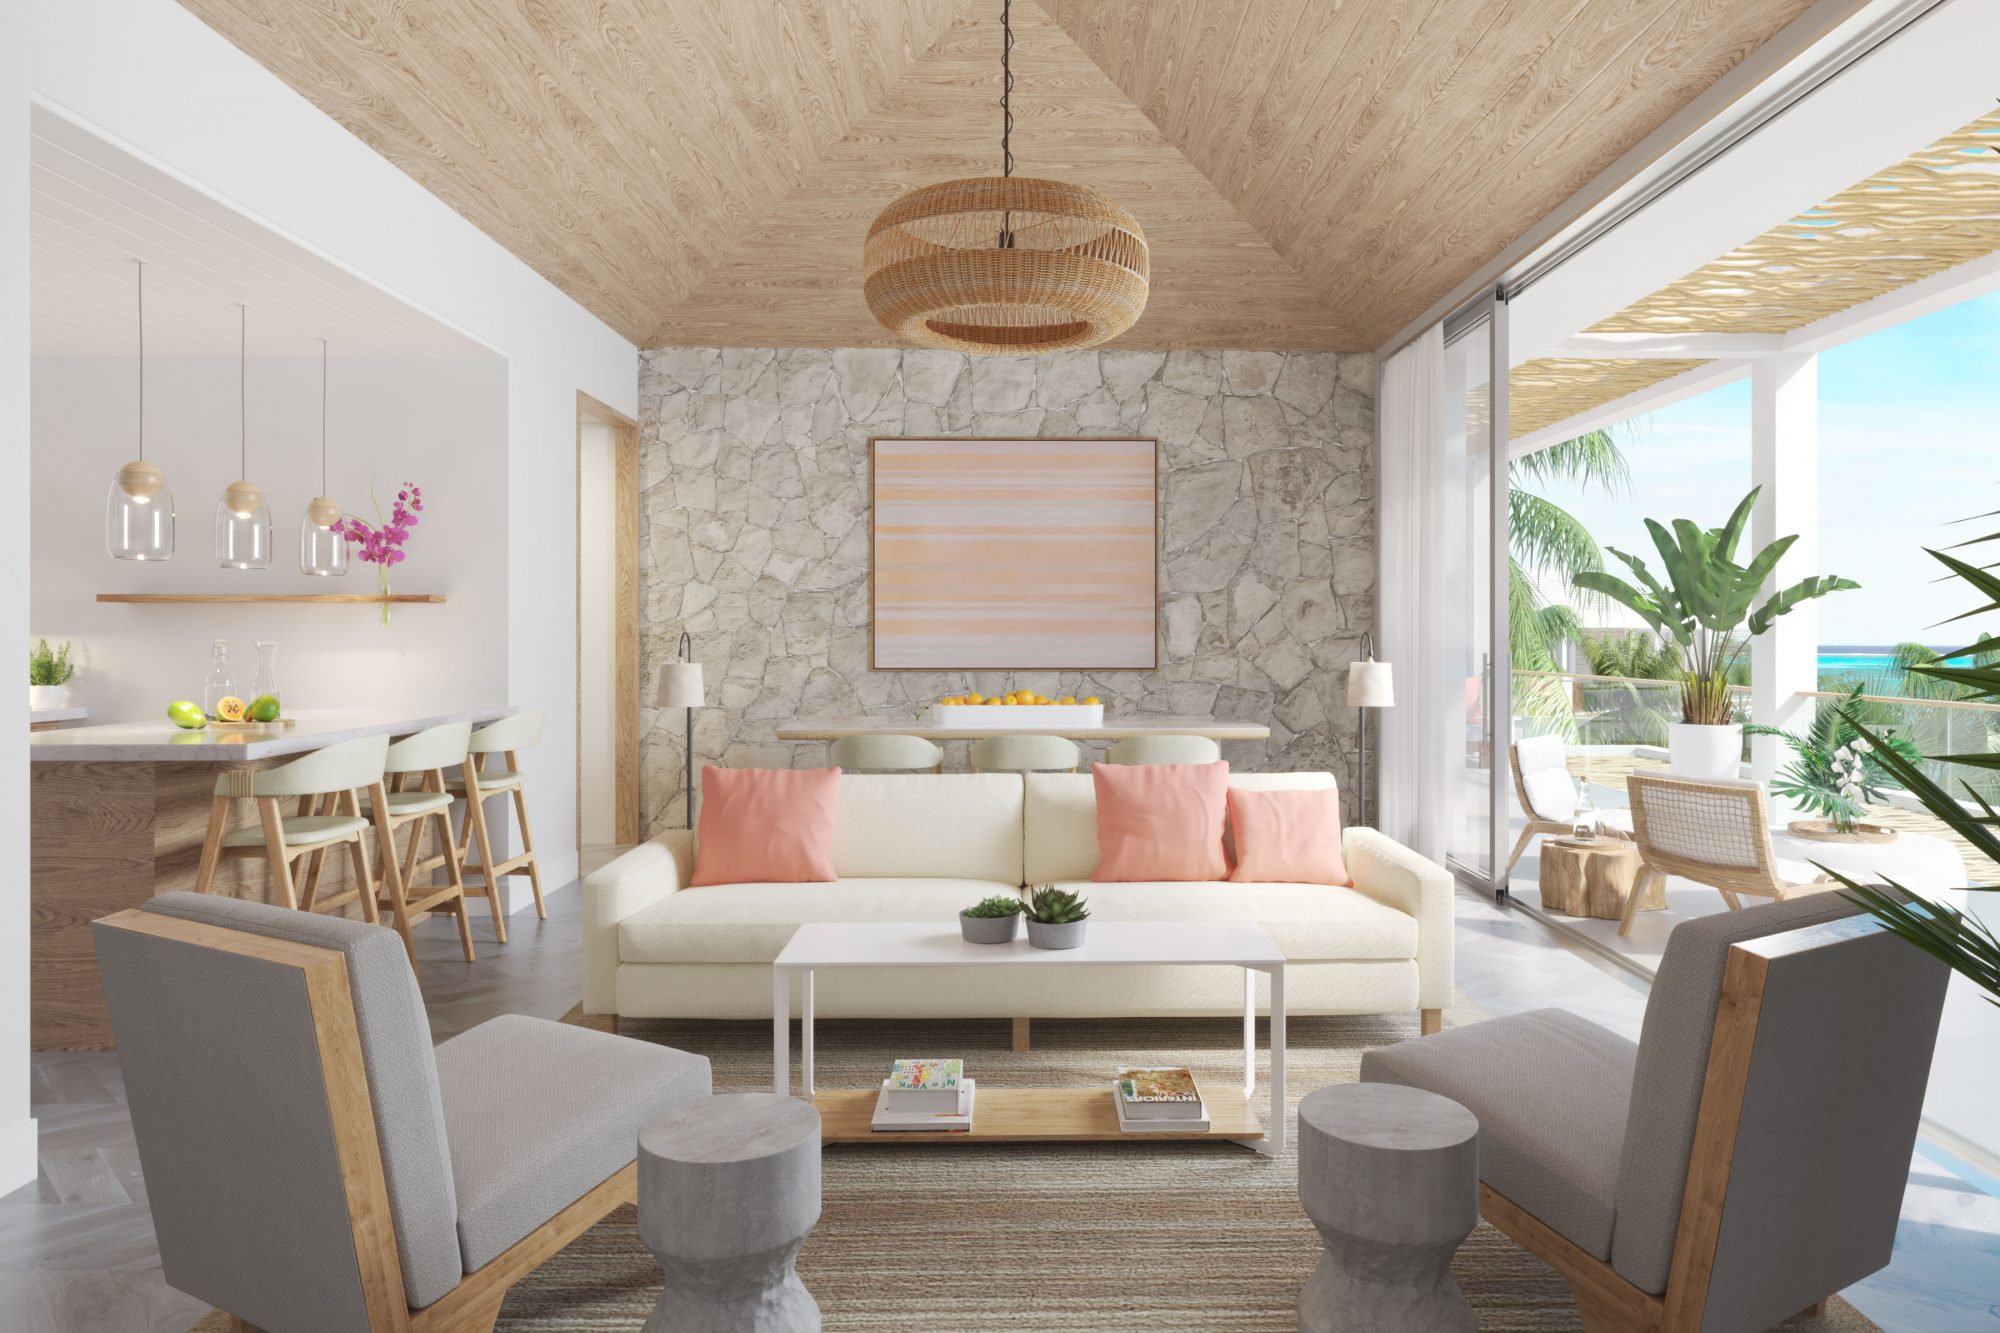 These Brand-New Caribbean Escapes Might Be the Chicest Condos We've Ever Seen